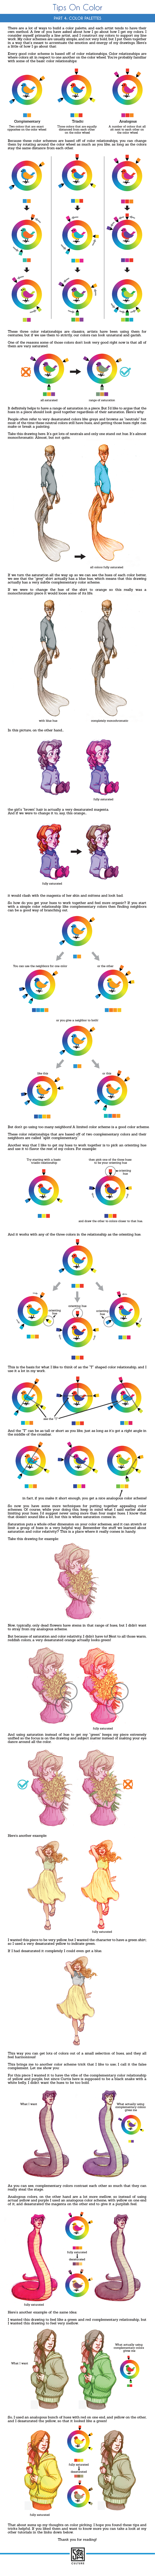 Color Tutorial Part 4: Color Picking and Palettes by SarahCulture